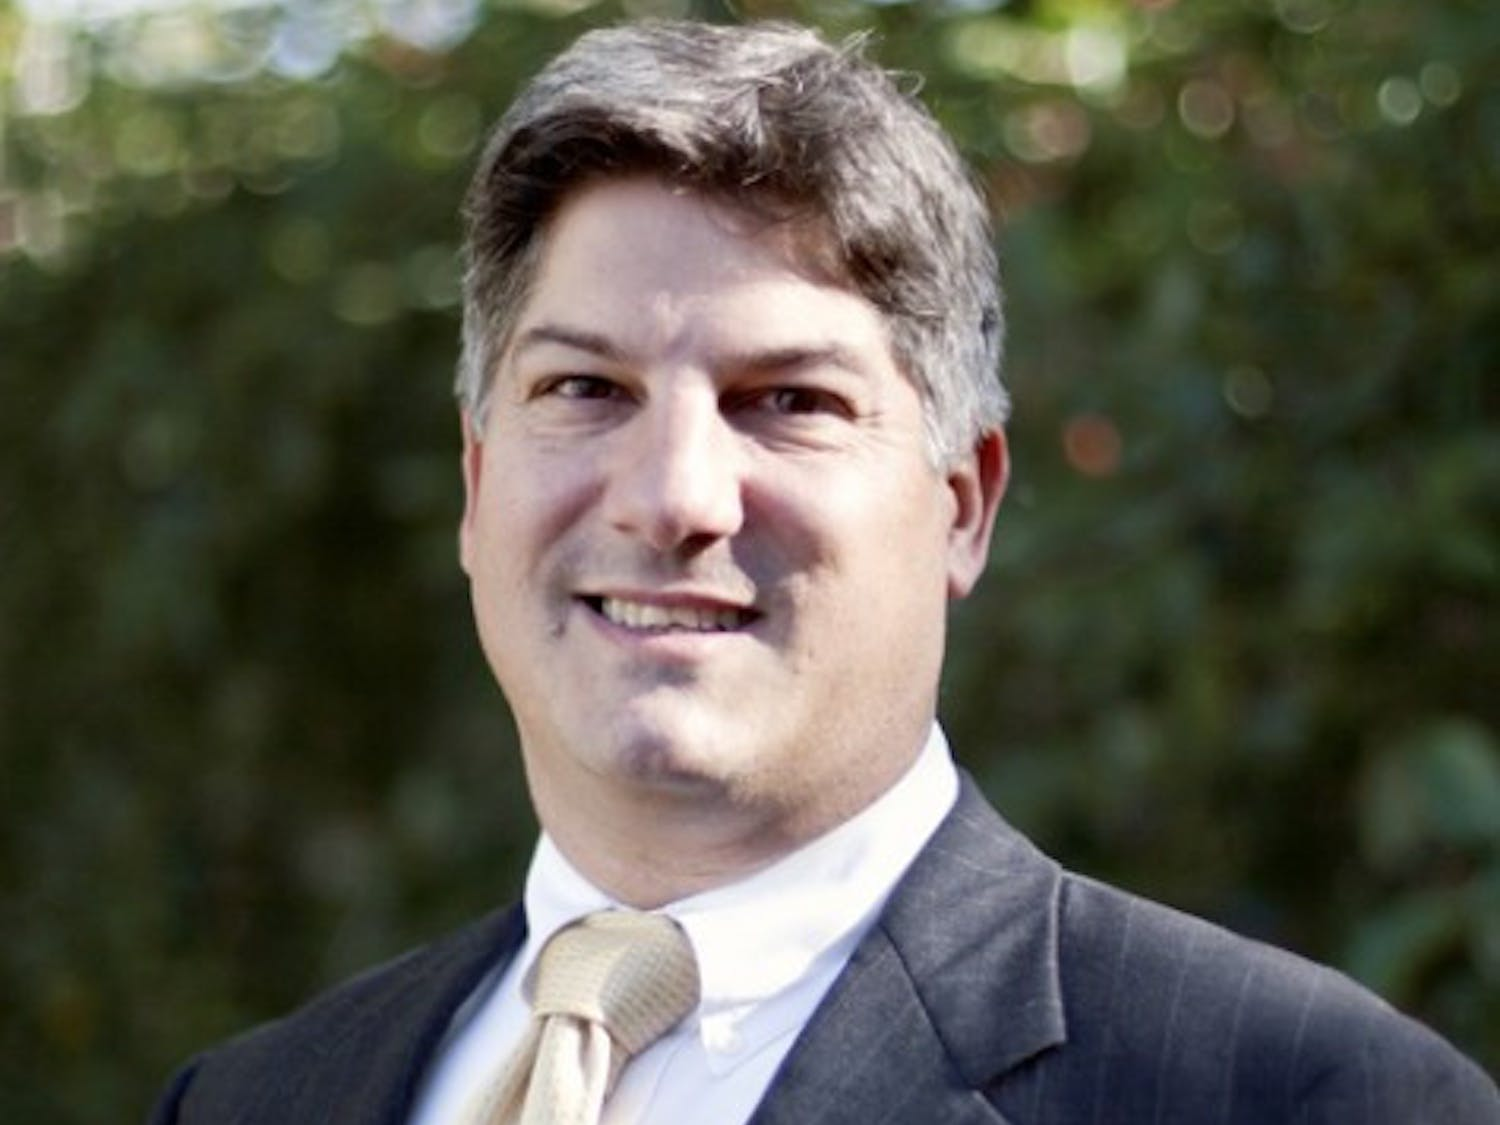 Nathan Skop is primarily concerned with fiscal responsibility, openness in government and a focus on public safety.